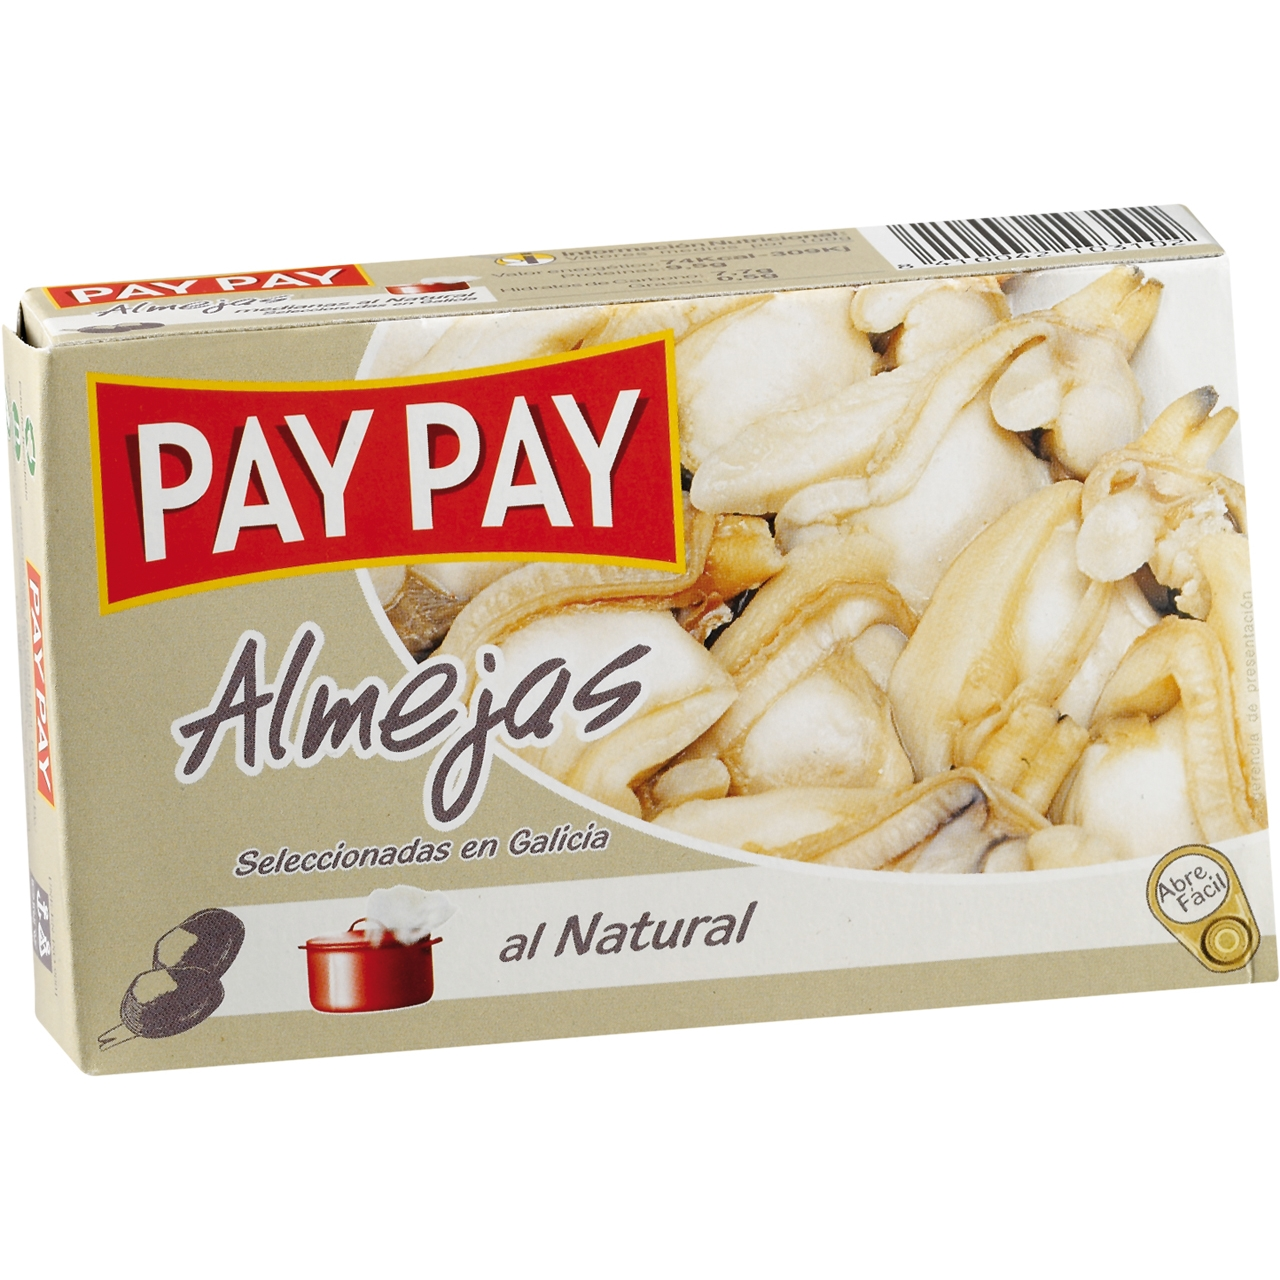 Cloïsses al natural OL 120 F.O. Pay Pay